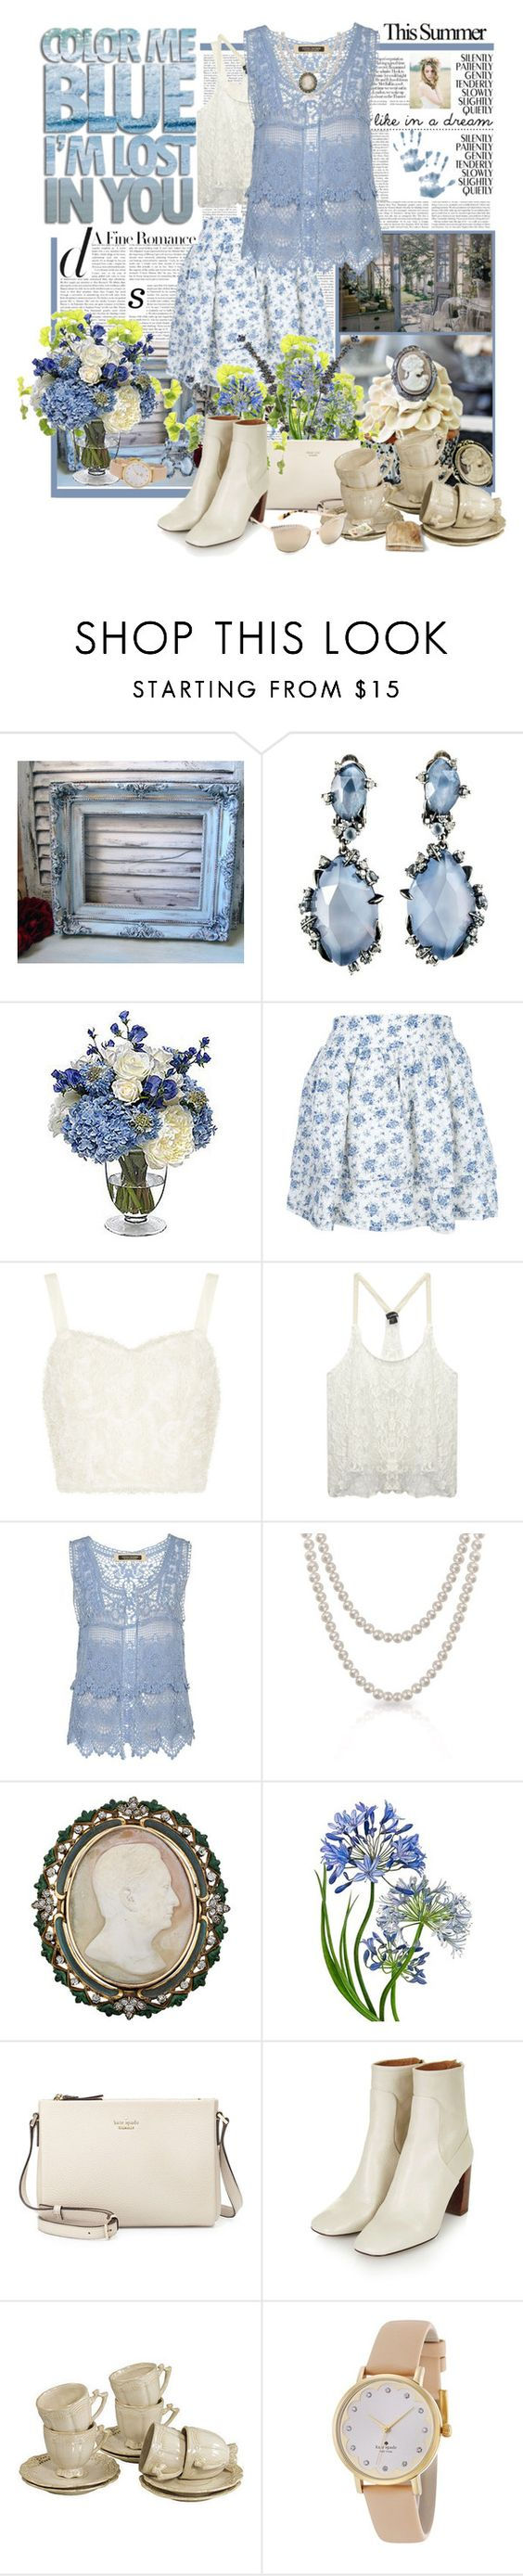 """""""Like In a Dream"""" by summersunshinesk7 ❤ liked on Polyvore featuring Mystique, Alexis Bittar, PEONY, FixDesign, Topshop, Wet Seal, River Island, Bling Jewelry, FRUIT and Kate Spade"""